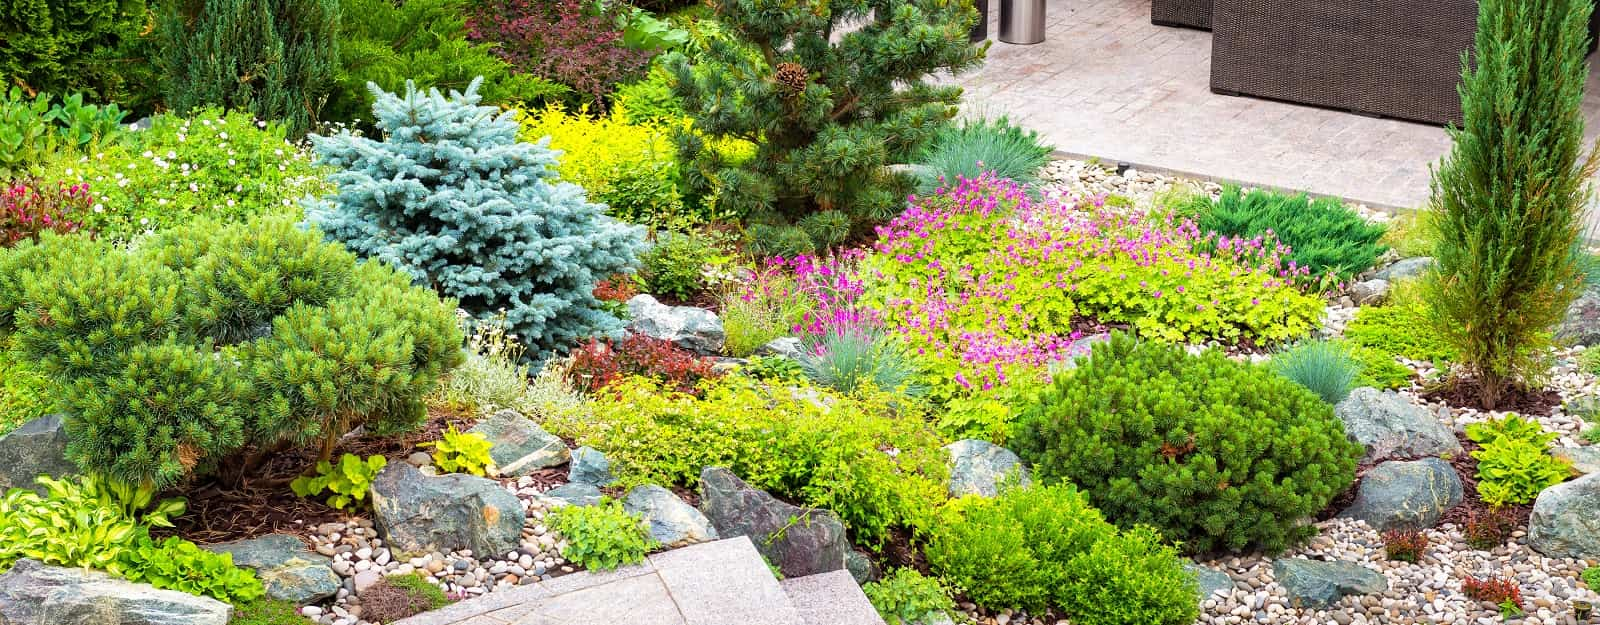 8 Landscaping Hacks To Make Your Backyard Look Bigger. Different types of trees and all palette of green with red inlays